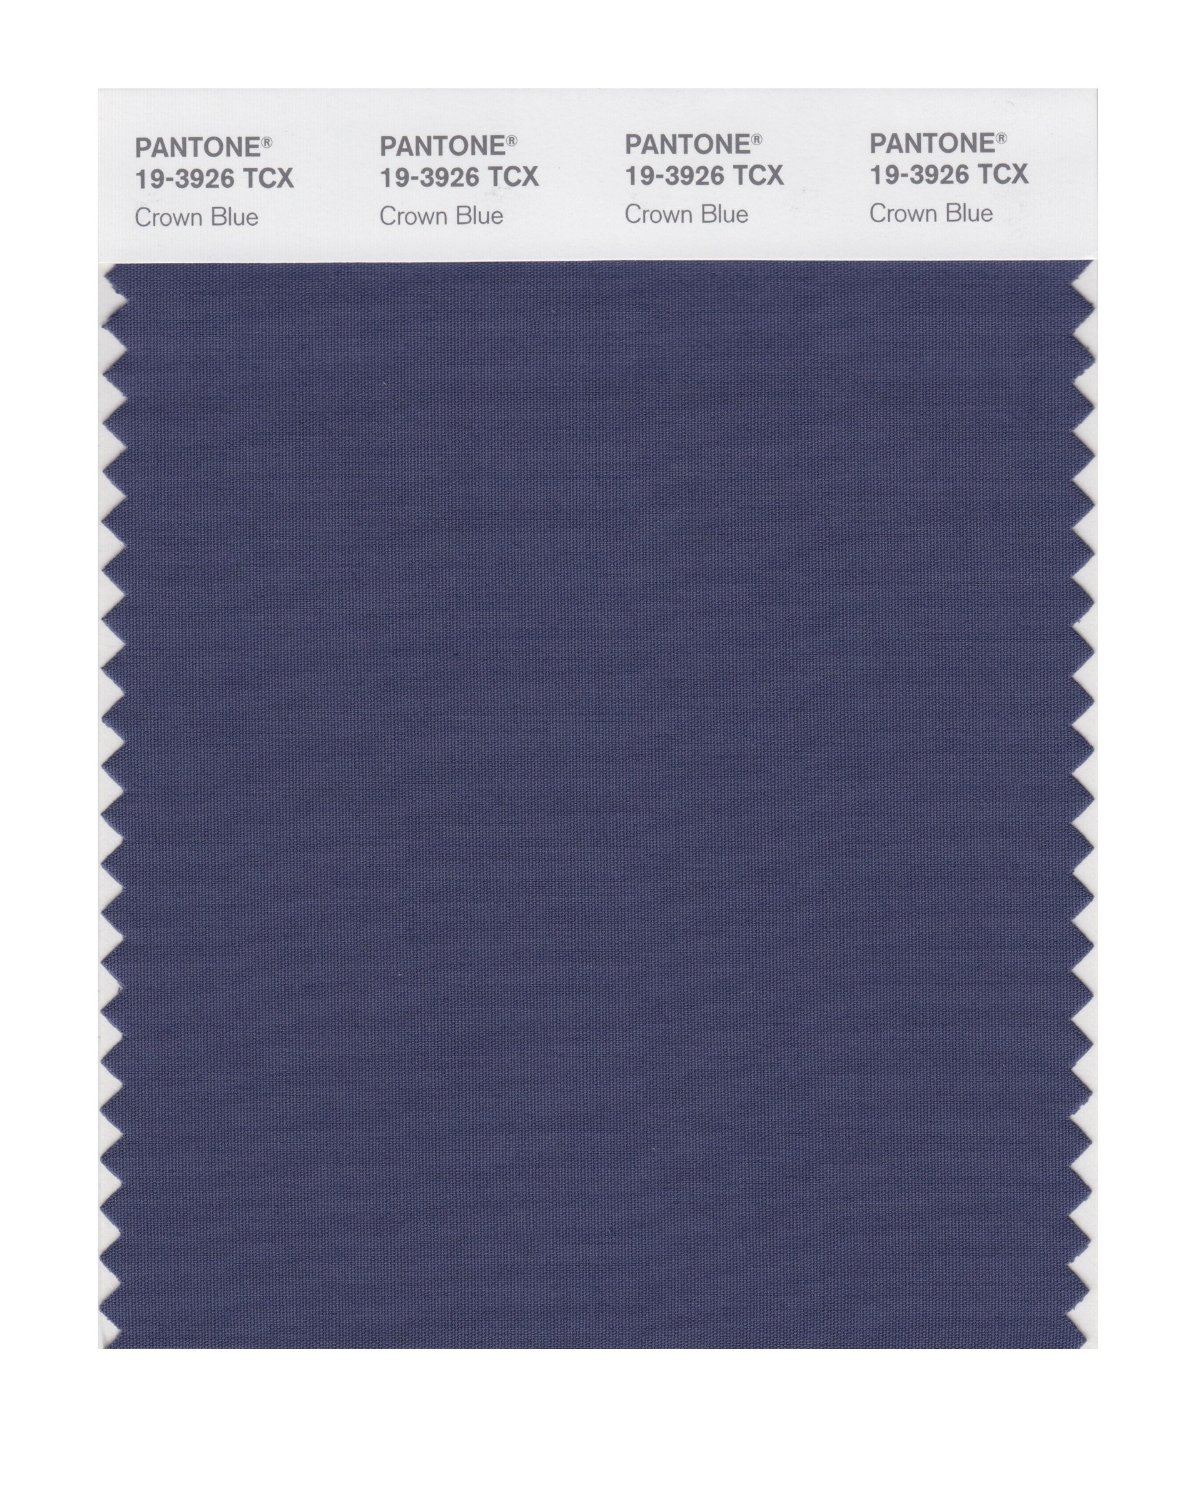 Pantone Smart Swatch 19-3926 Crown Blue